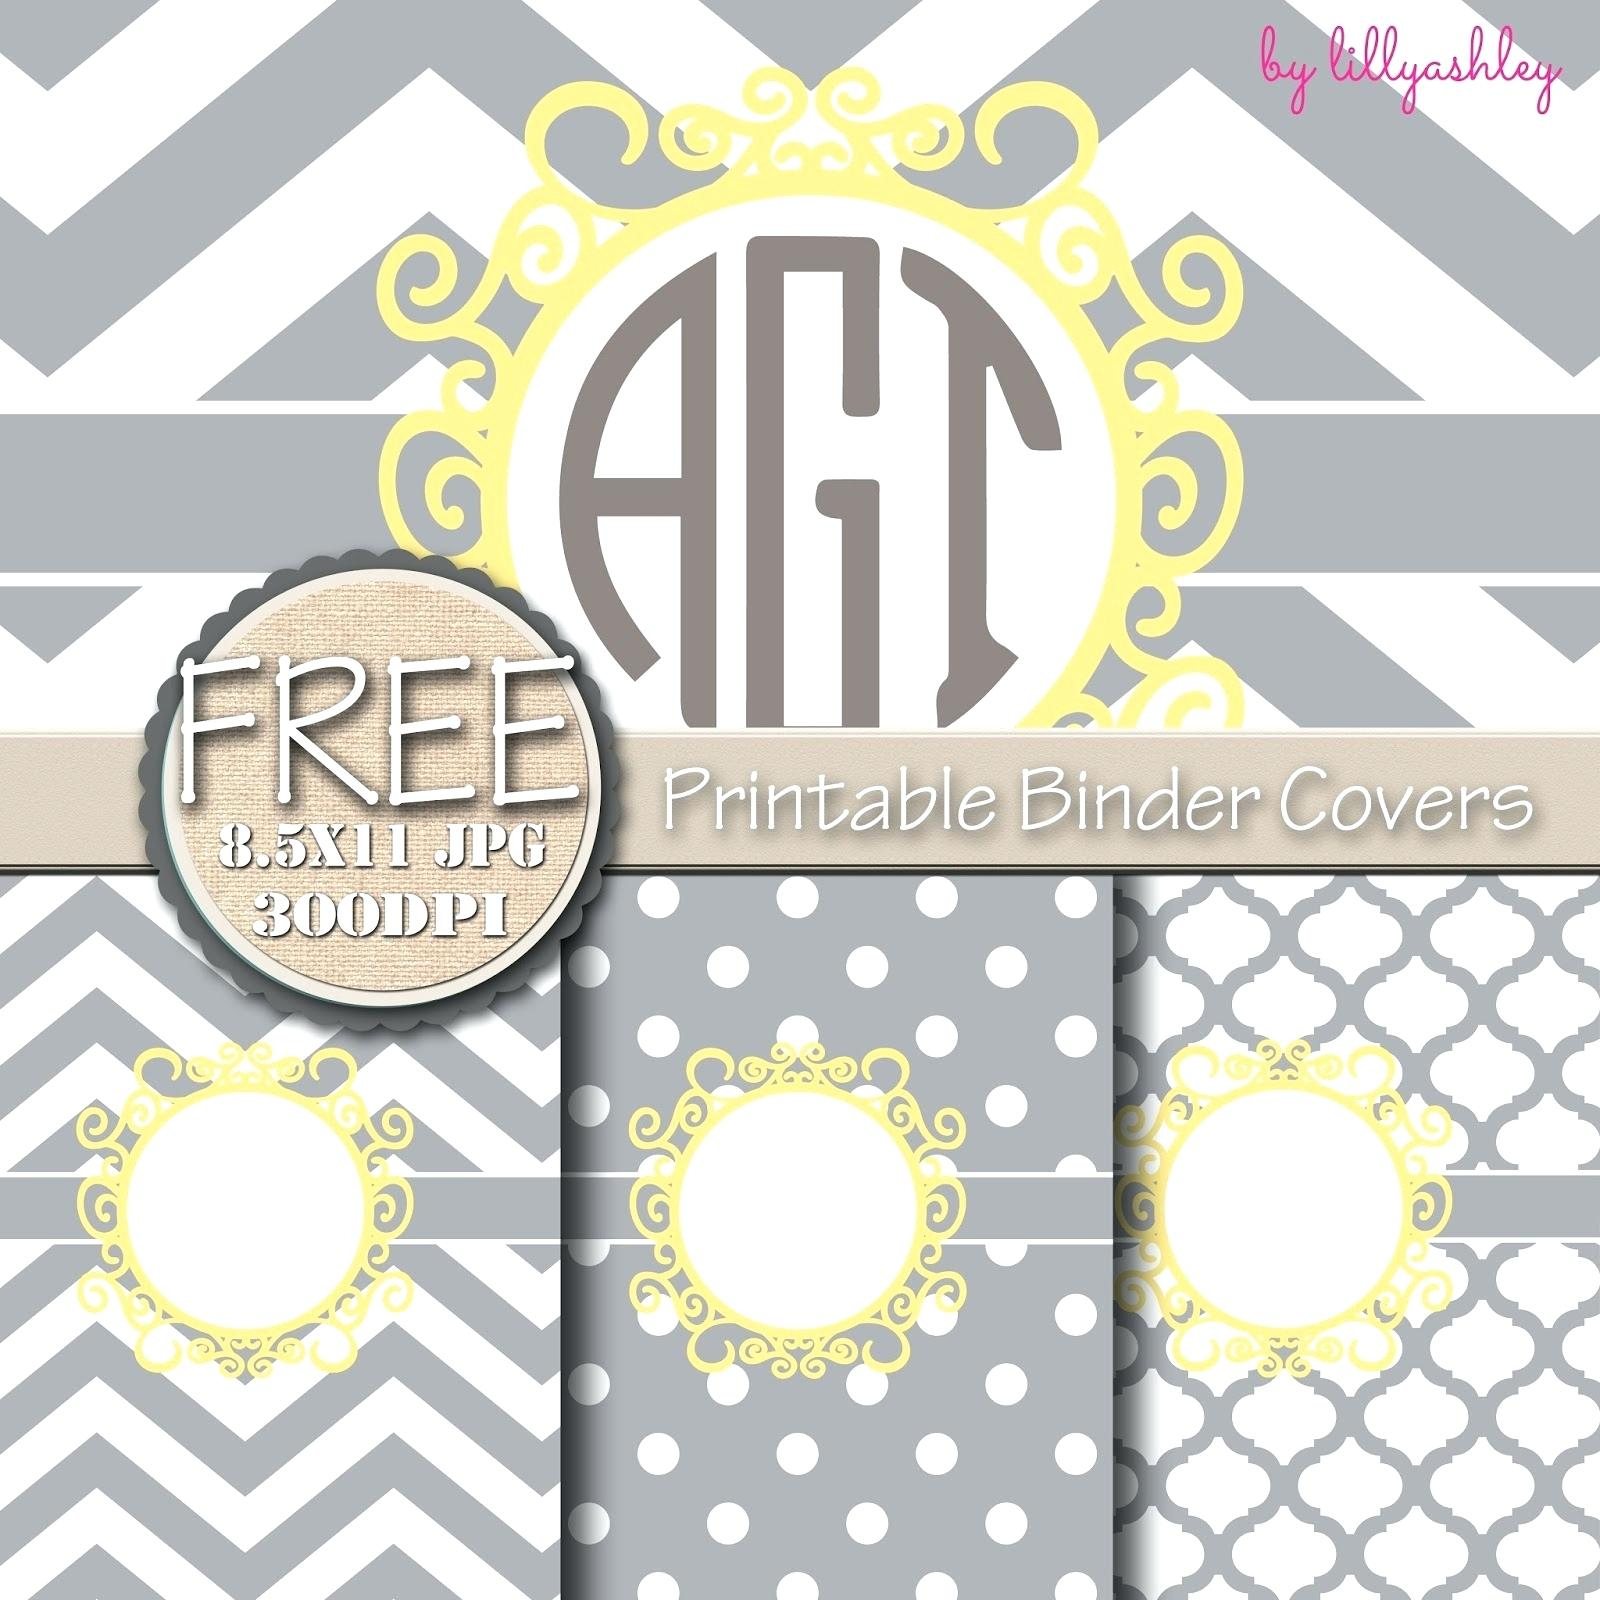 021 Binder Cover Templates Free Template Ideas Printable Spine Sheet - Free Editable Printable Binder Covers